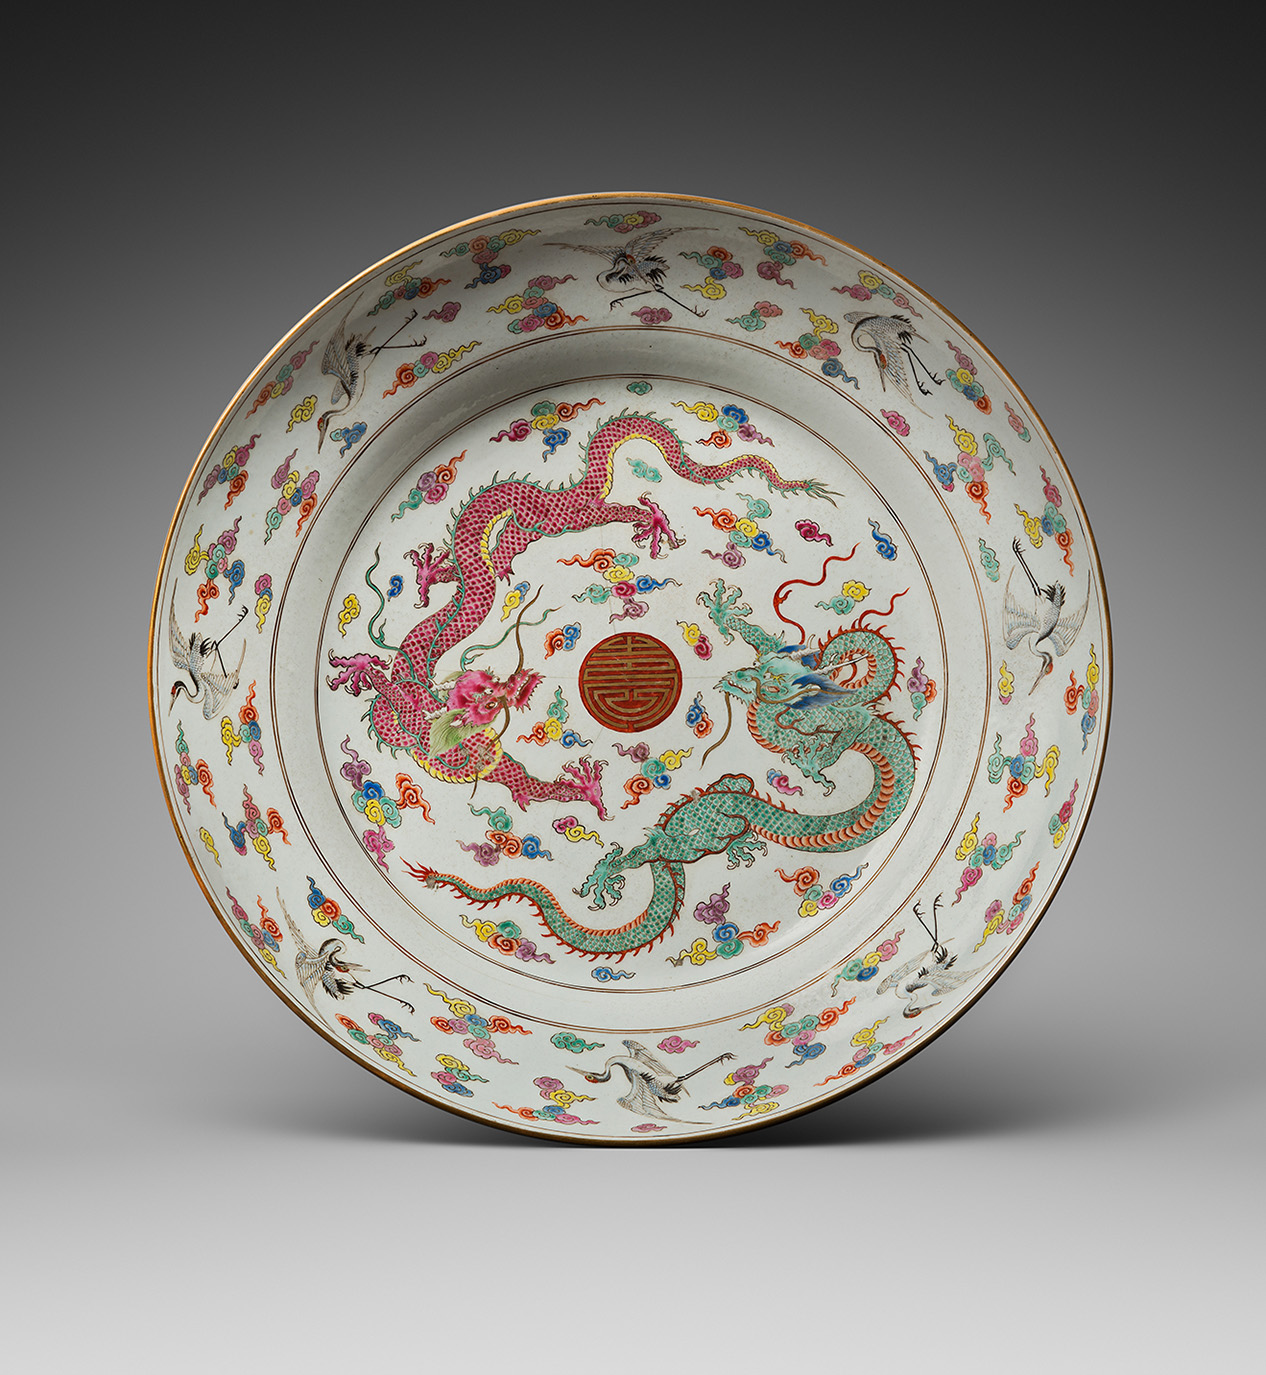 China, Yongzheng period (1723-1735), polychrome enameled porcelain cup decorated in the center with two dragons surrounding a stylized sho